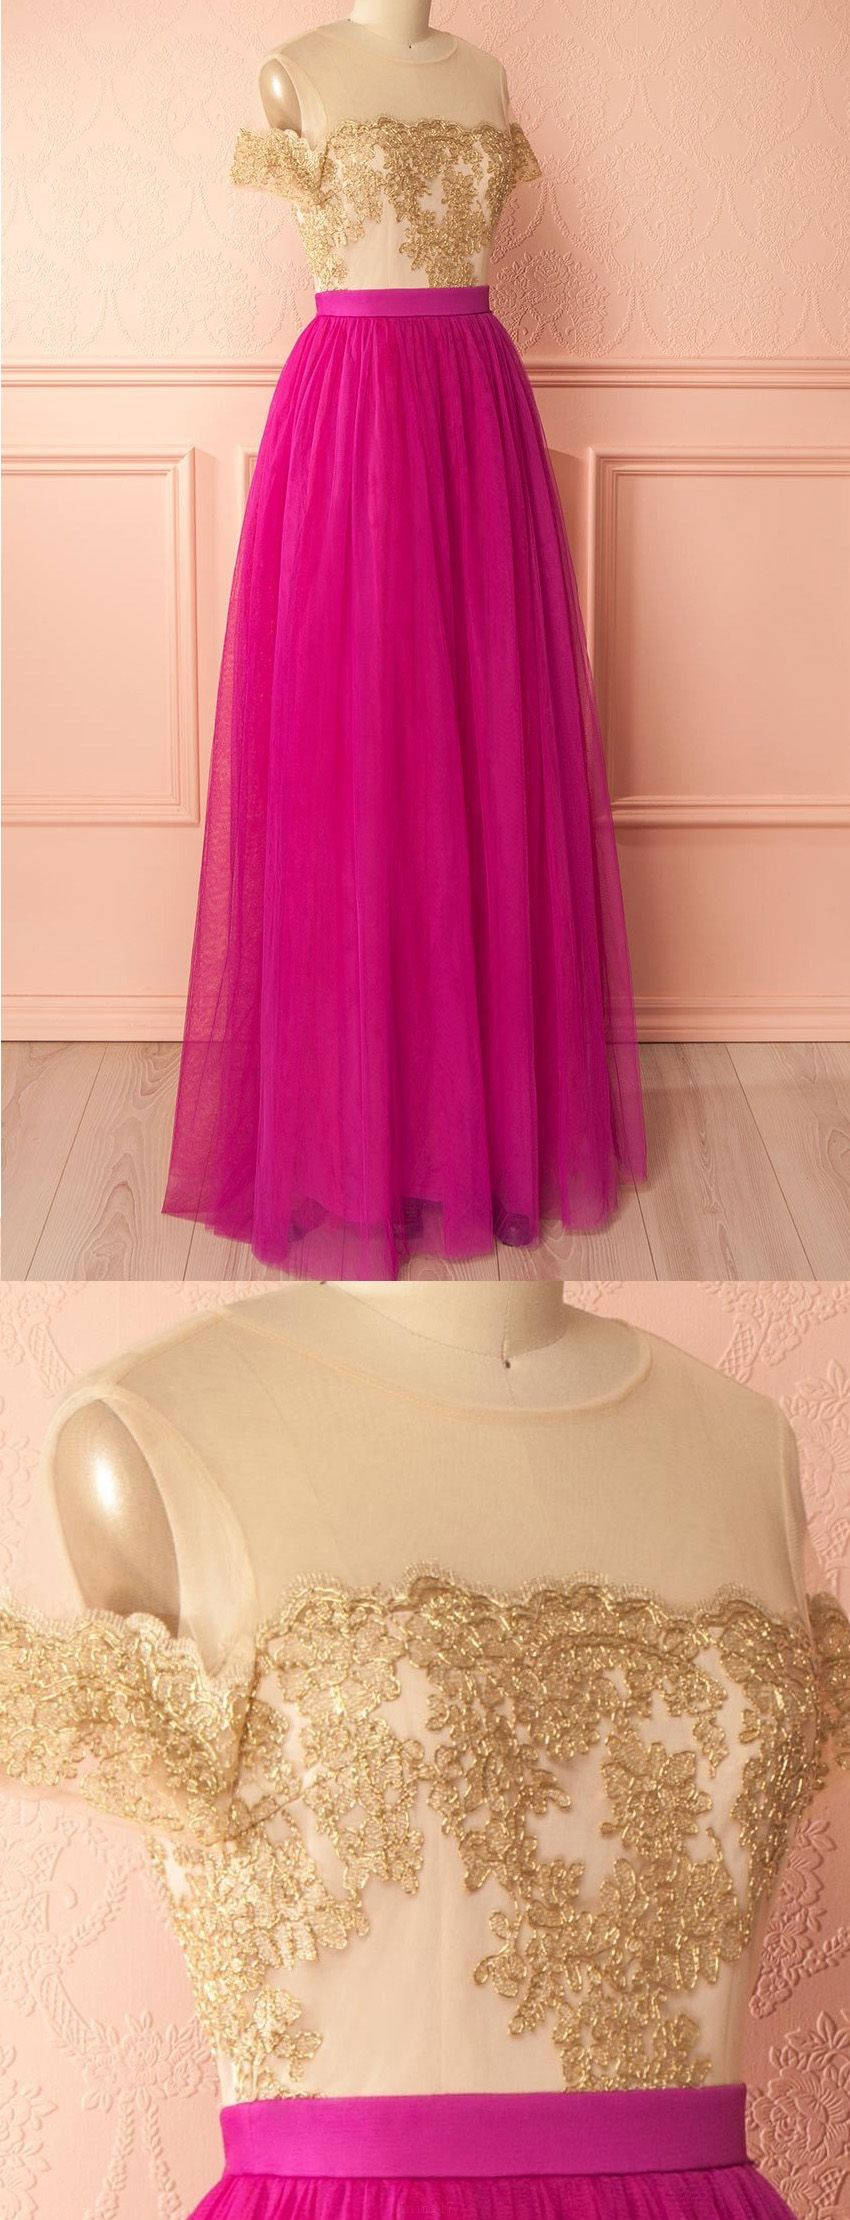 Hot sale short sleeve dresses long fuchsia evening prom dresses with